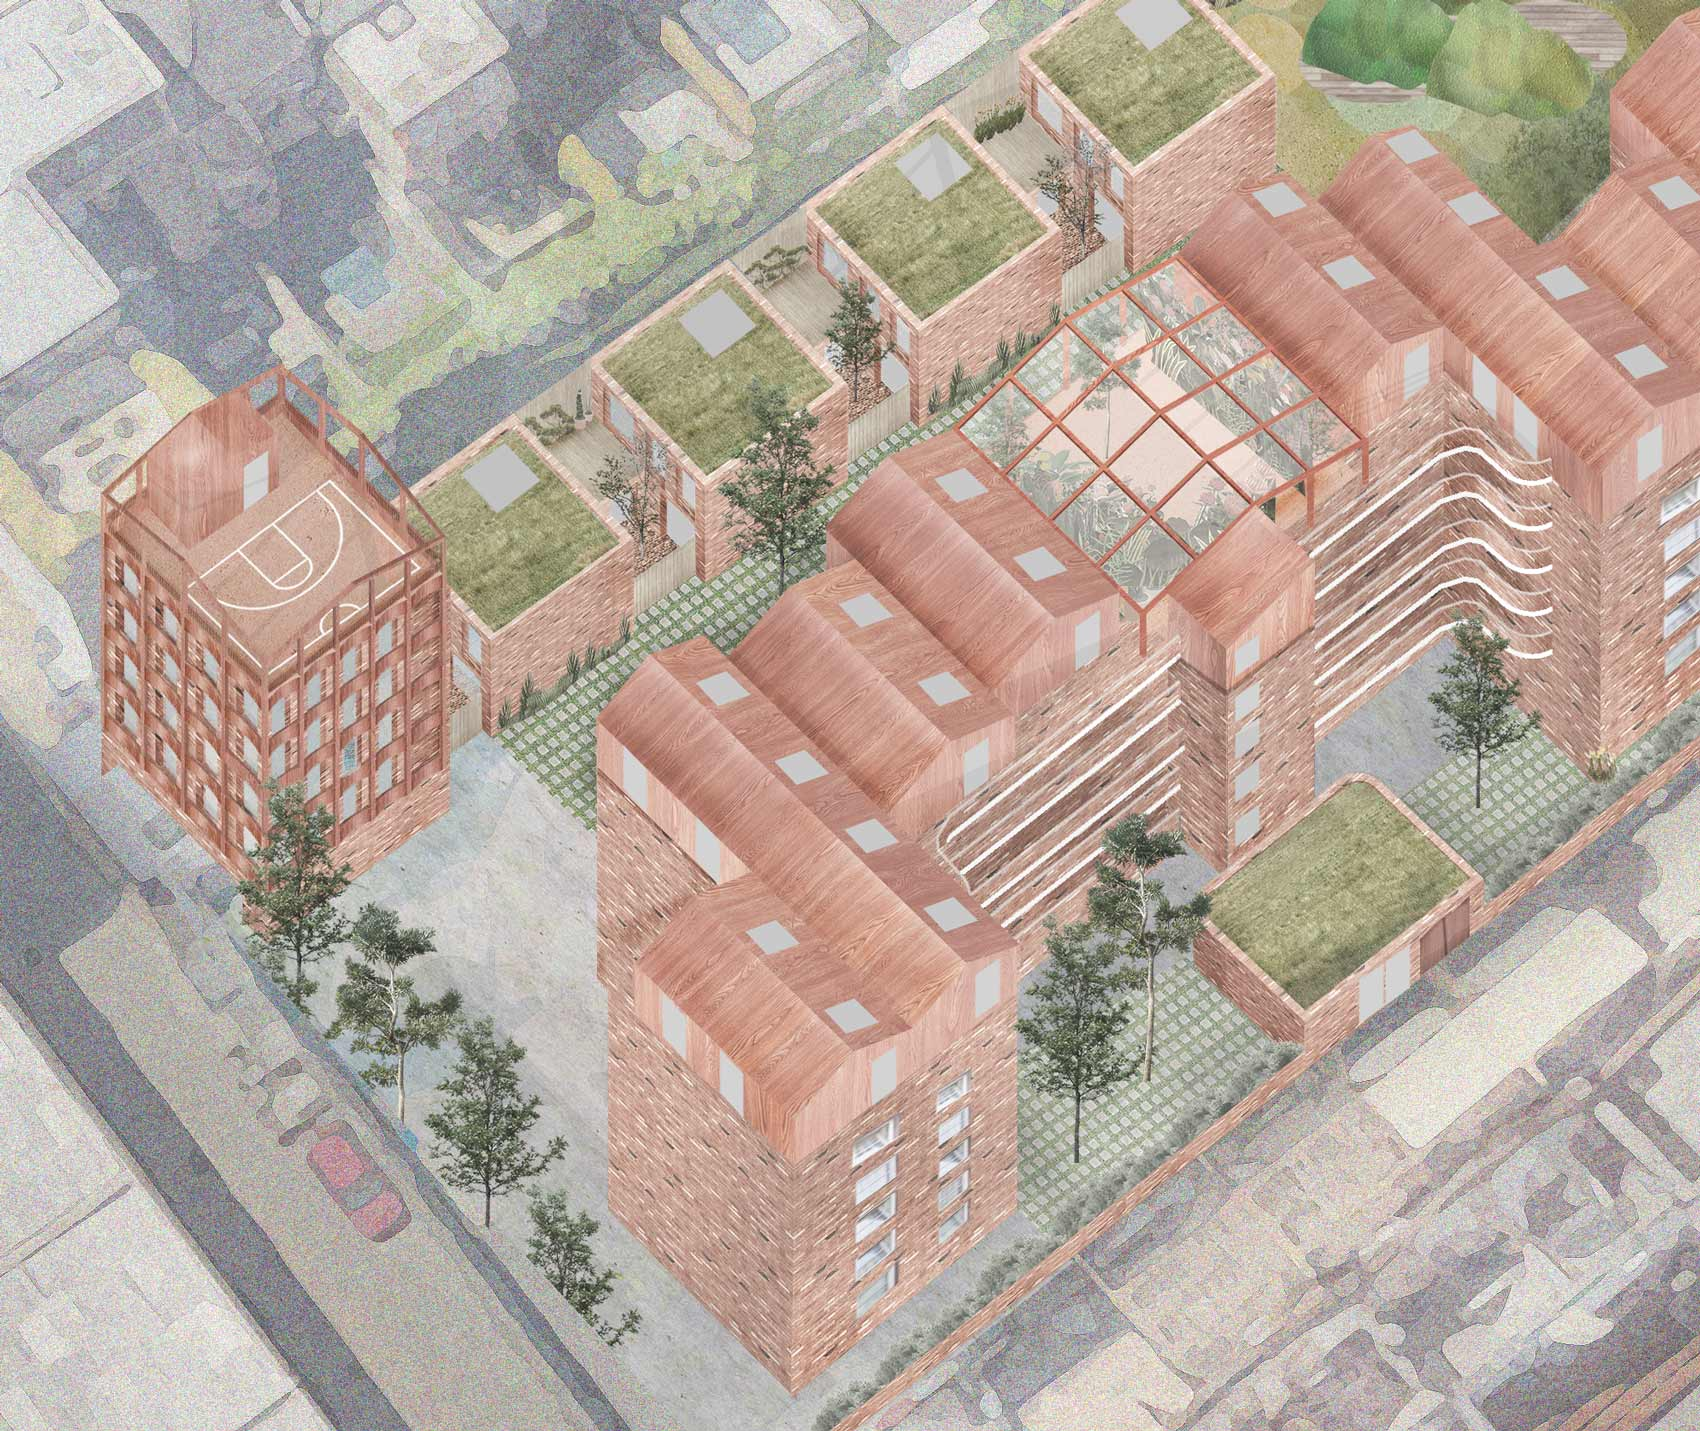 London estate regeneration architect